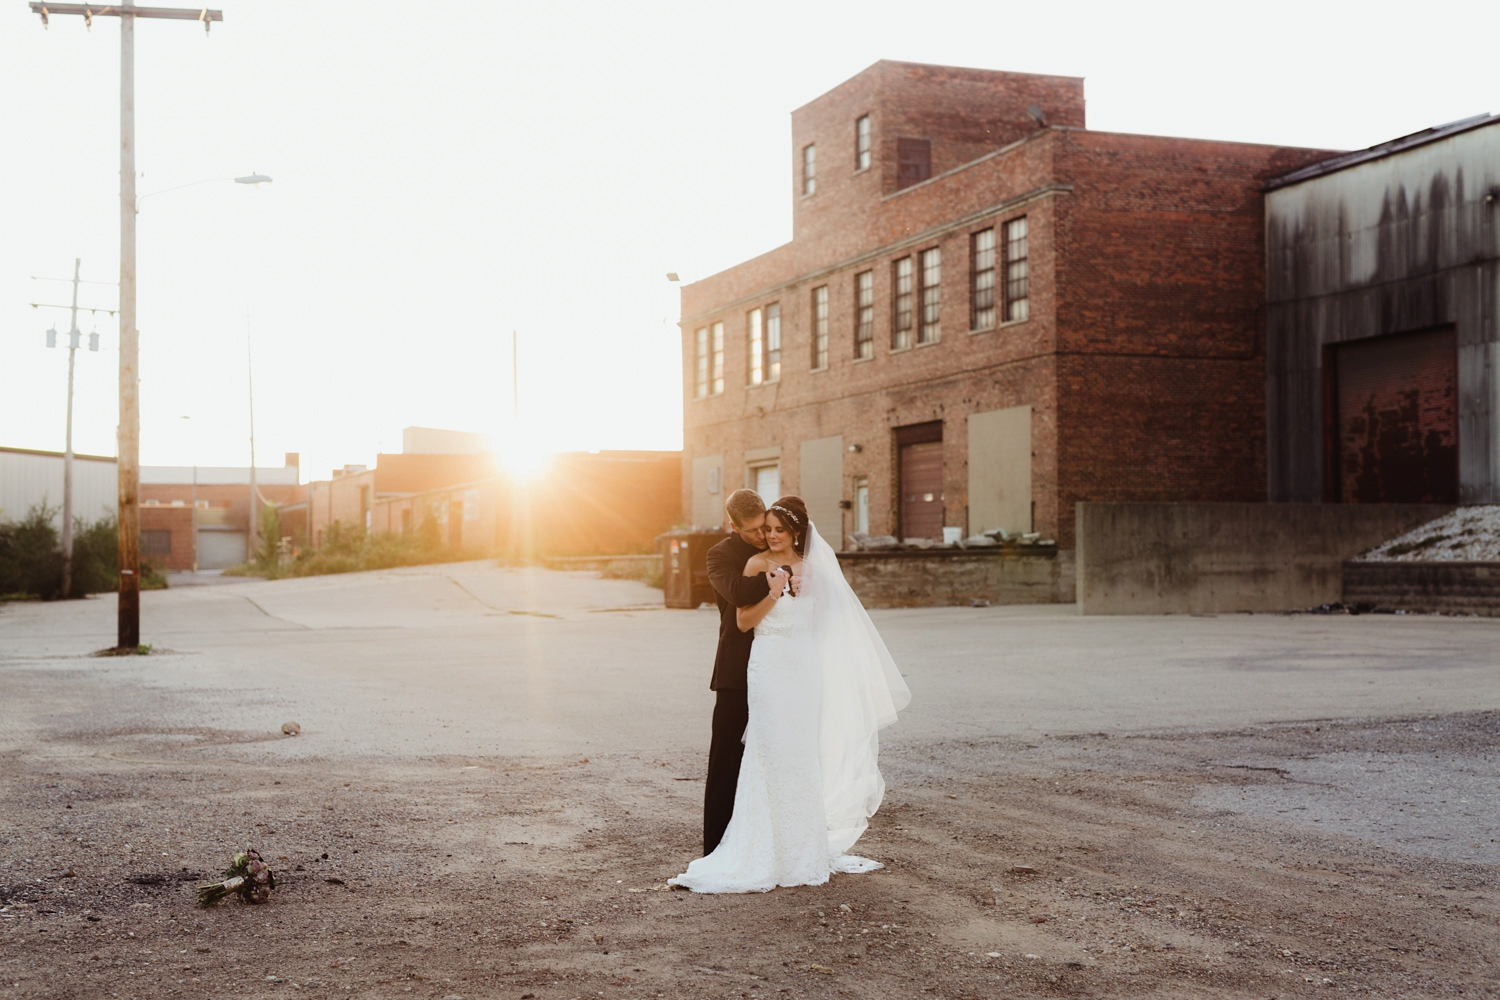 bride and groom embrasing at sunset behind a run down warehouse